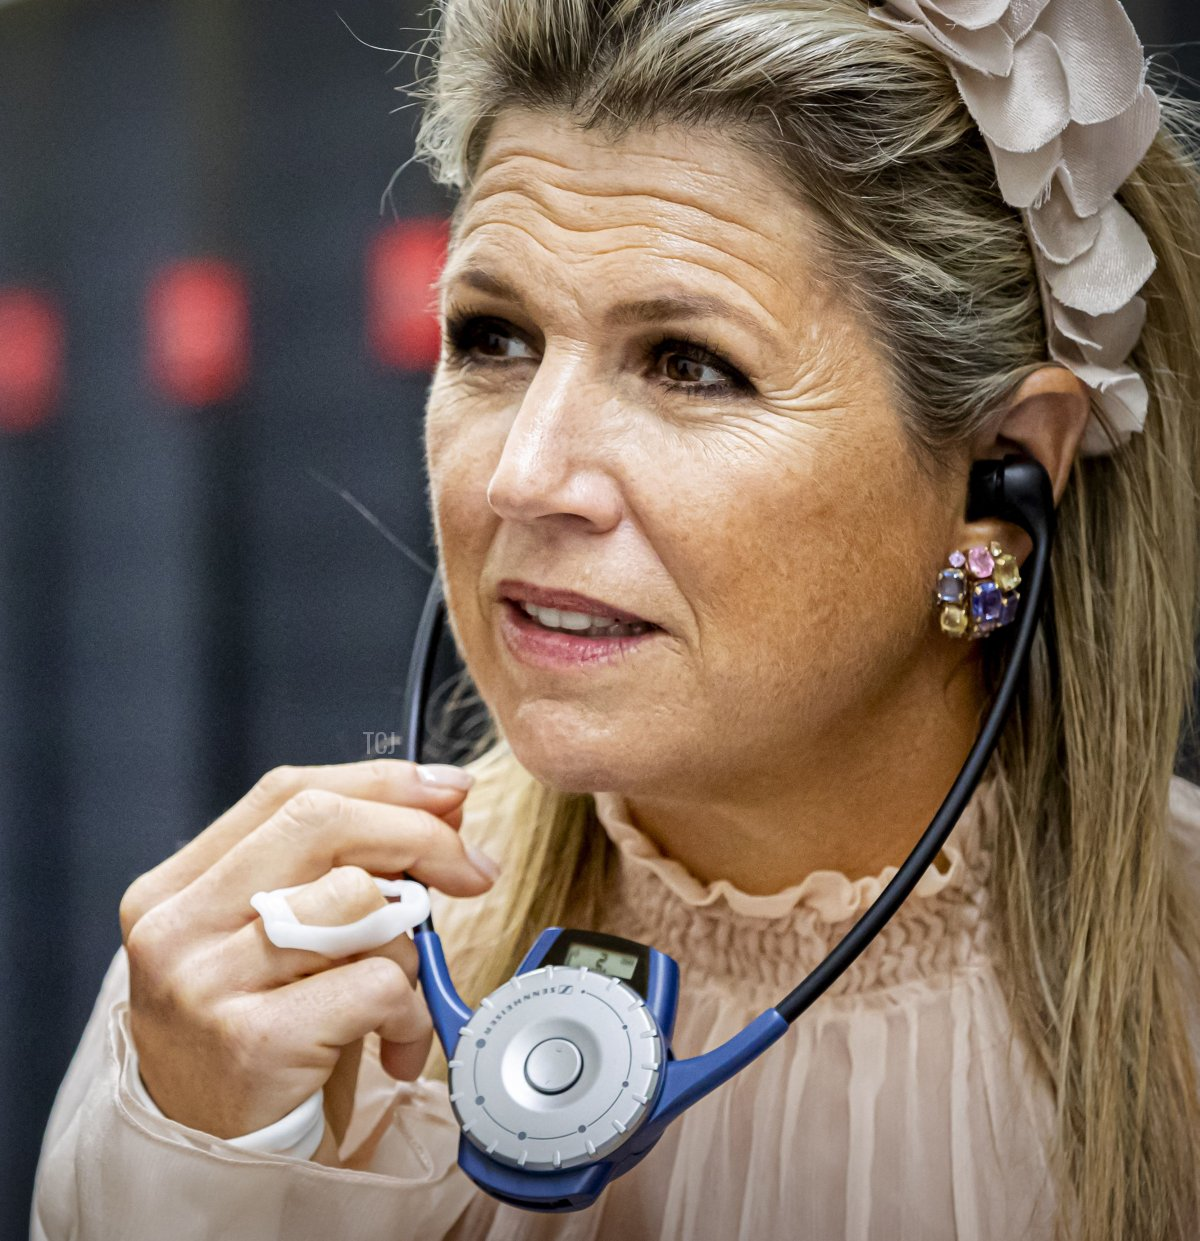 Dutch Queen Maxima looks at the national supercomputer Snellius during a visit at the Science Park in Amsterdam, on September 16, 2021